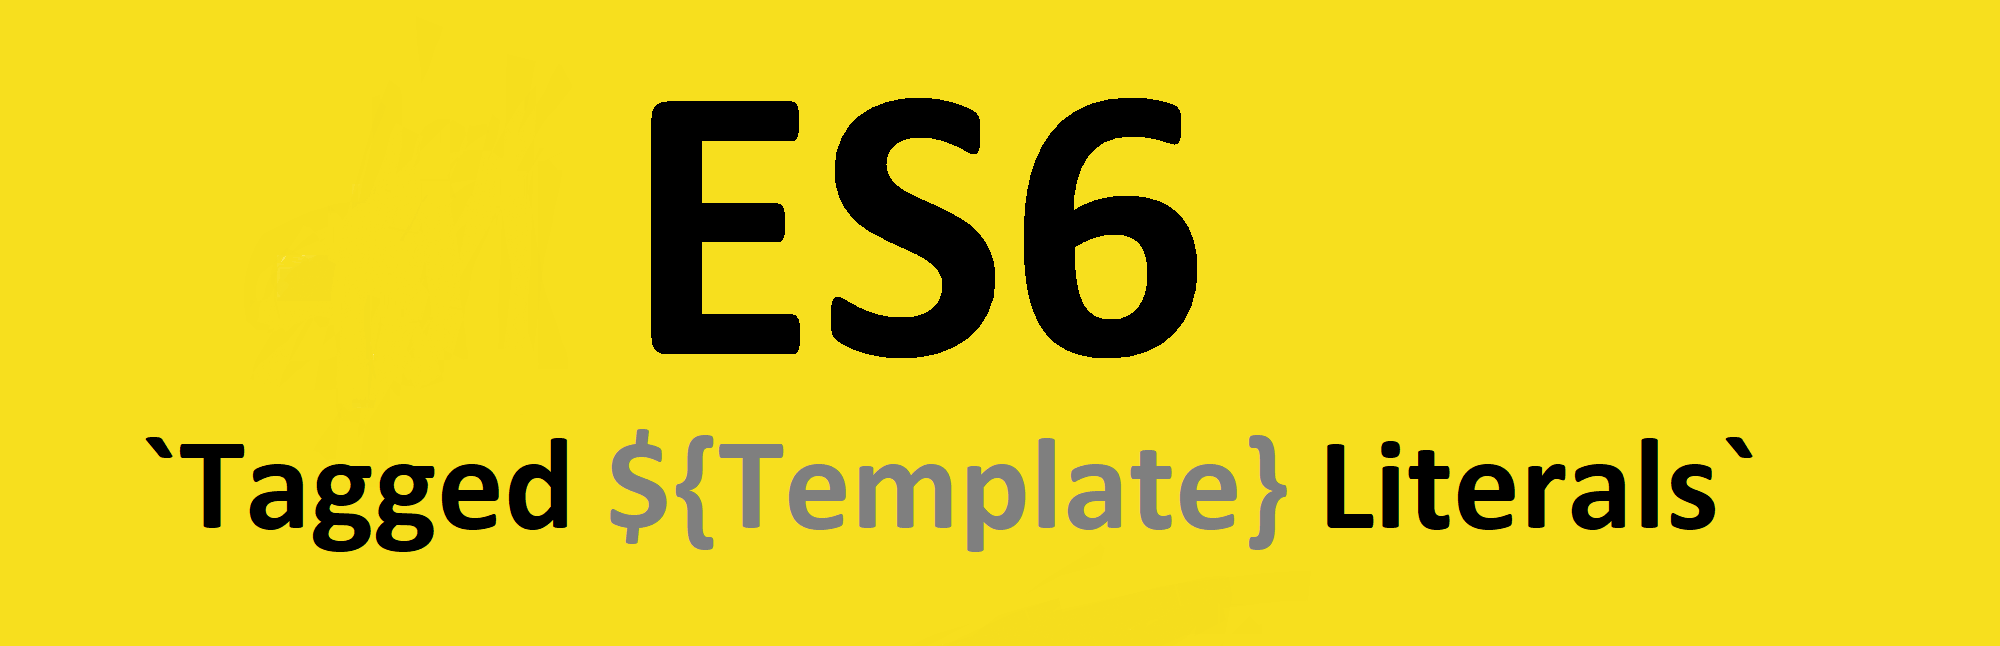 refreshing the memory the es6 template